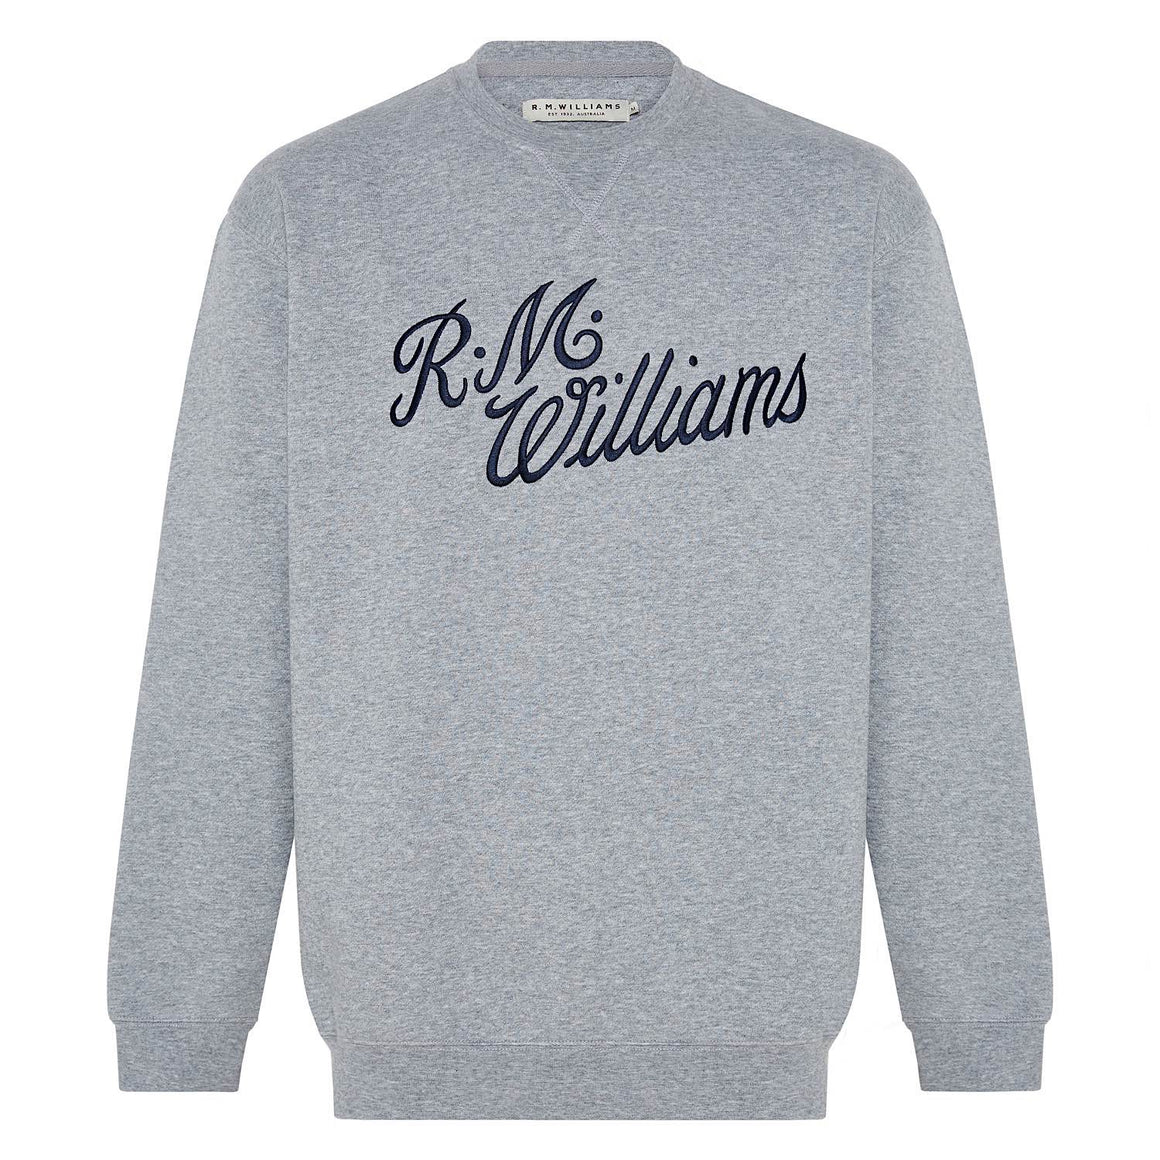 R.M.Williams Script Crew Neck Fleece Jumper Regular Fit Grey Blue